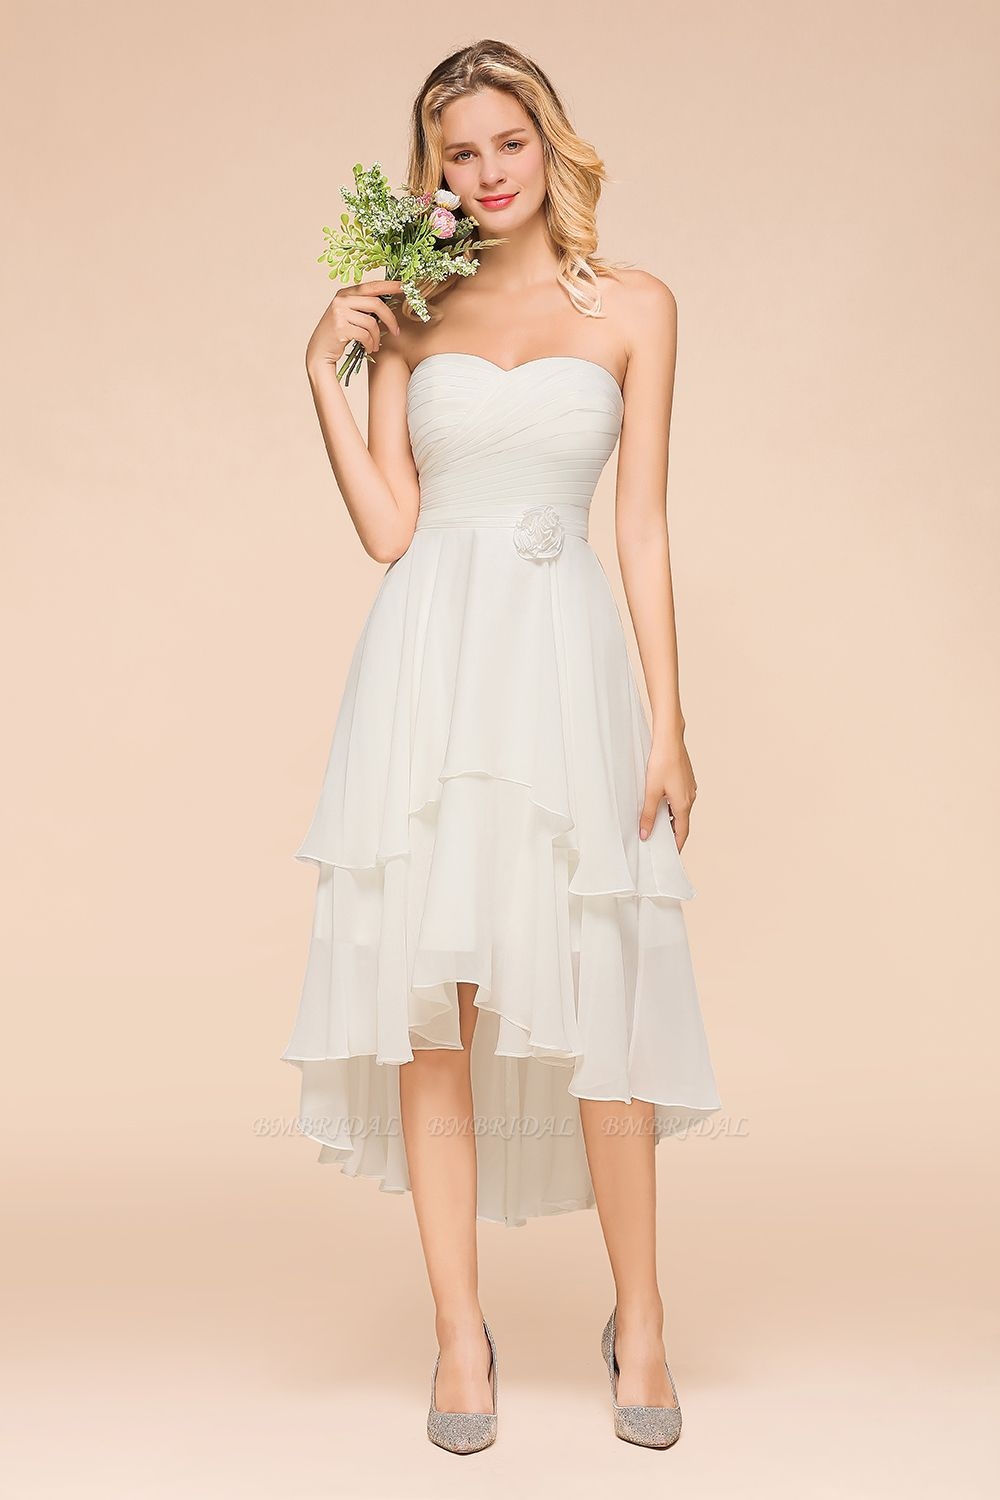 BMbridal Affordable Hi-Lo Layer Ruffle Ivory Short Bridesmaid Dress with Flower